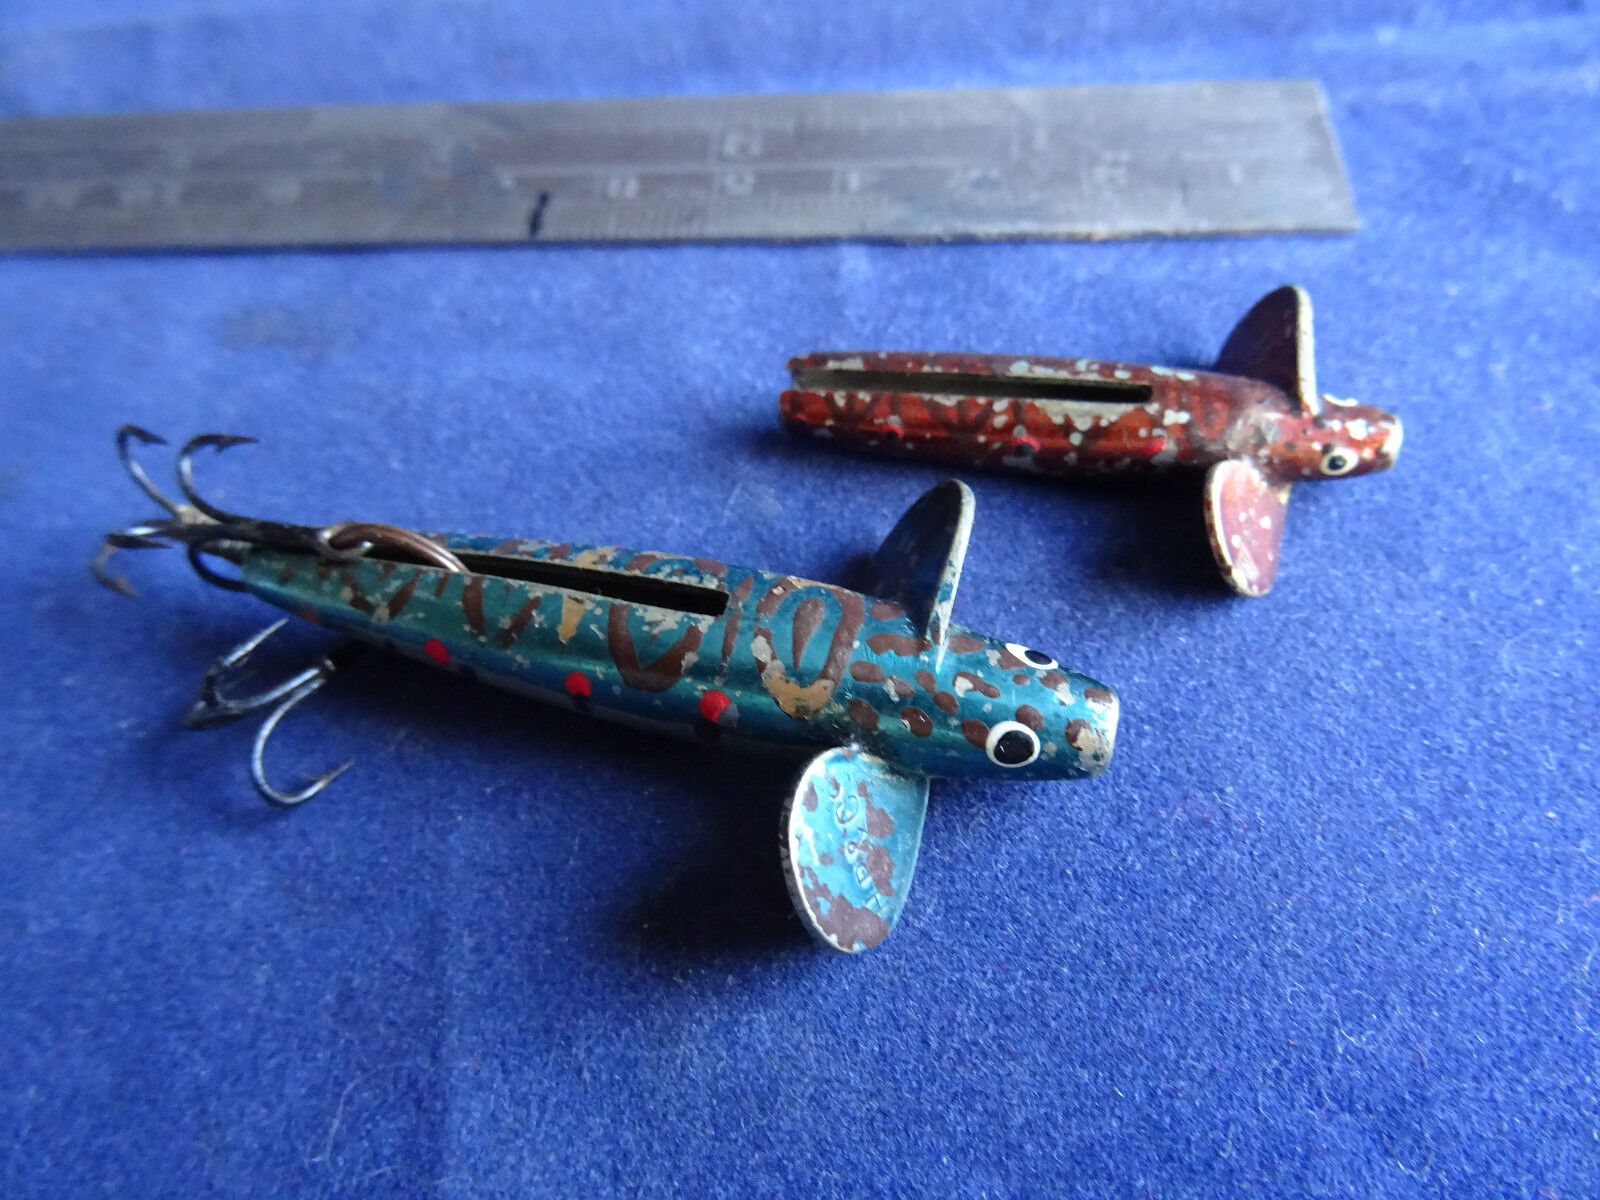 2 EARLY VINTAGE SLOTTED DEVON MINNOWS STAMPED W.B & S AND H.B & CO.